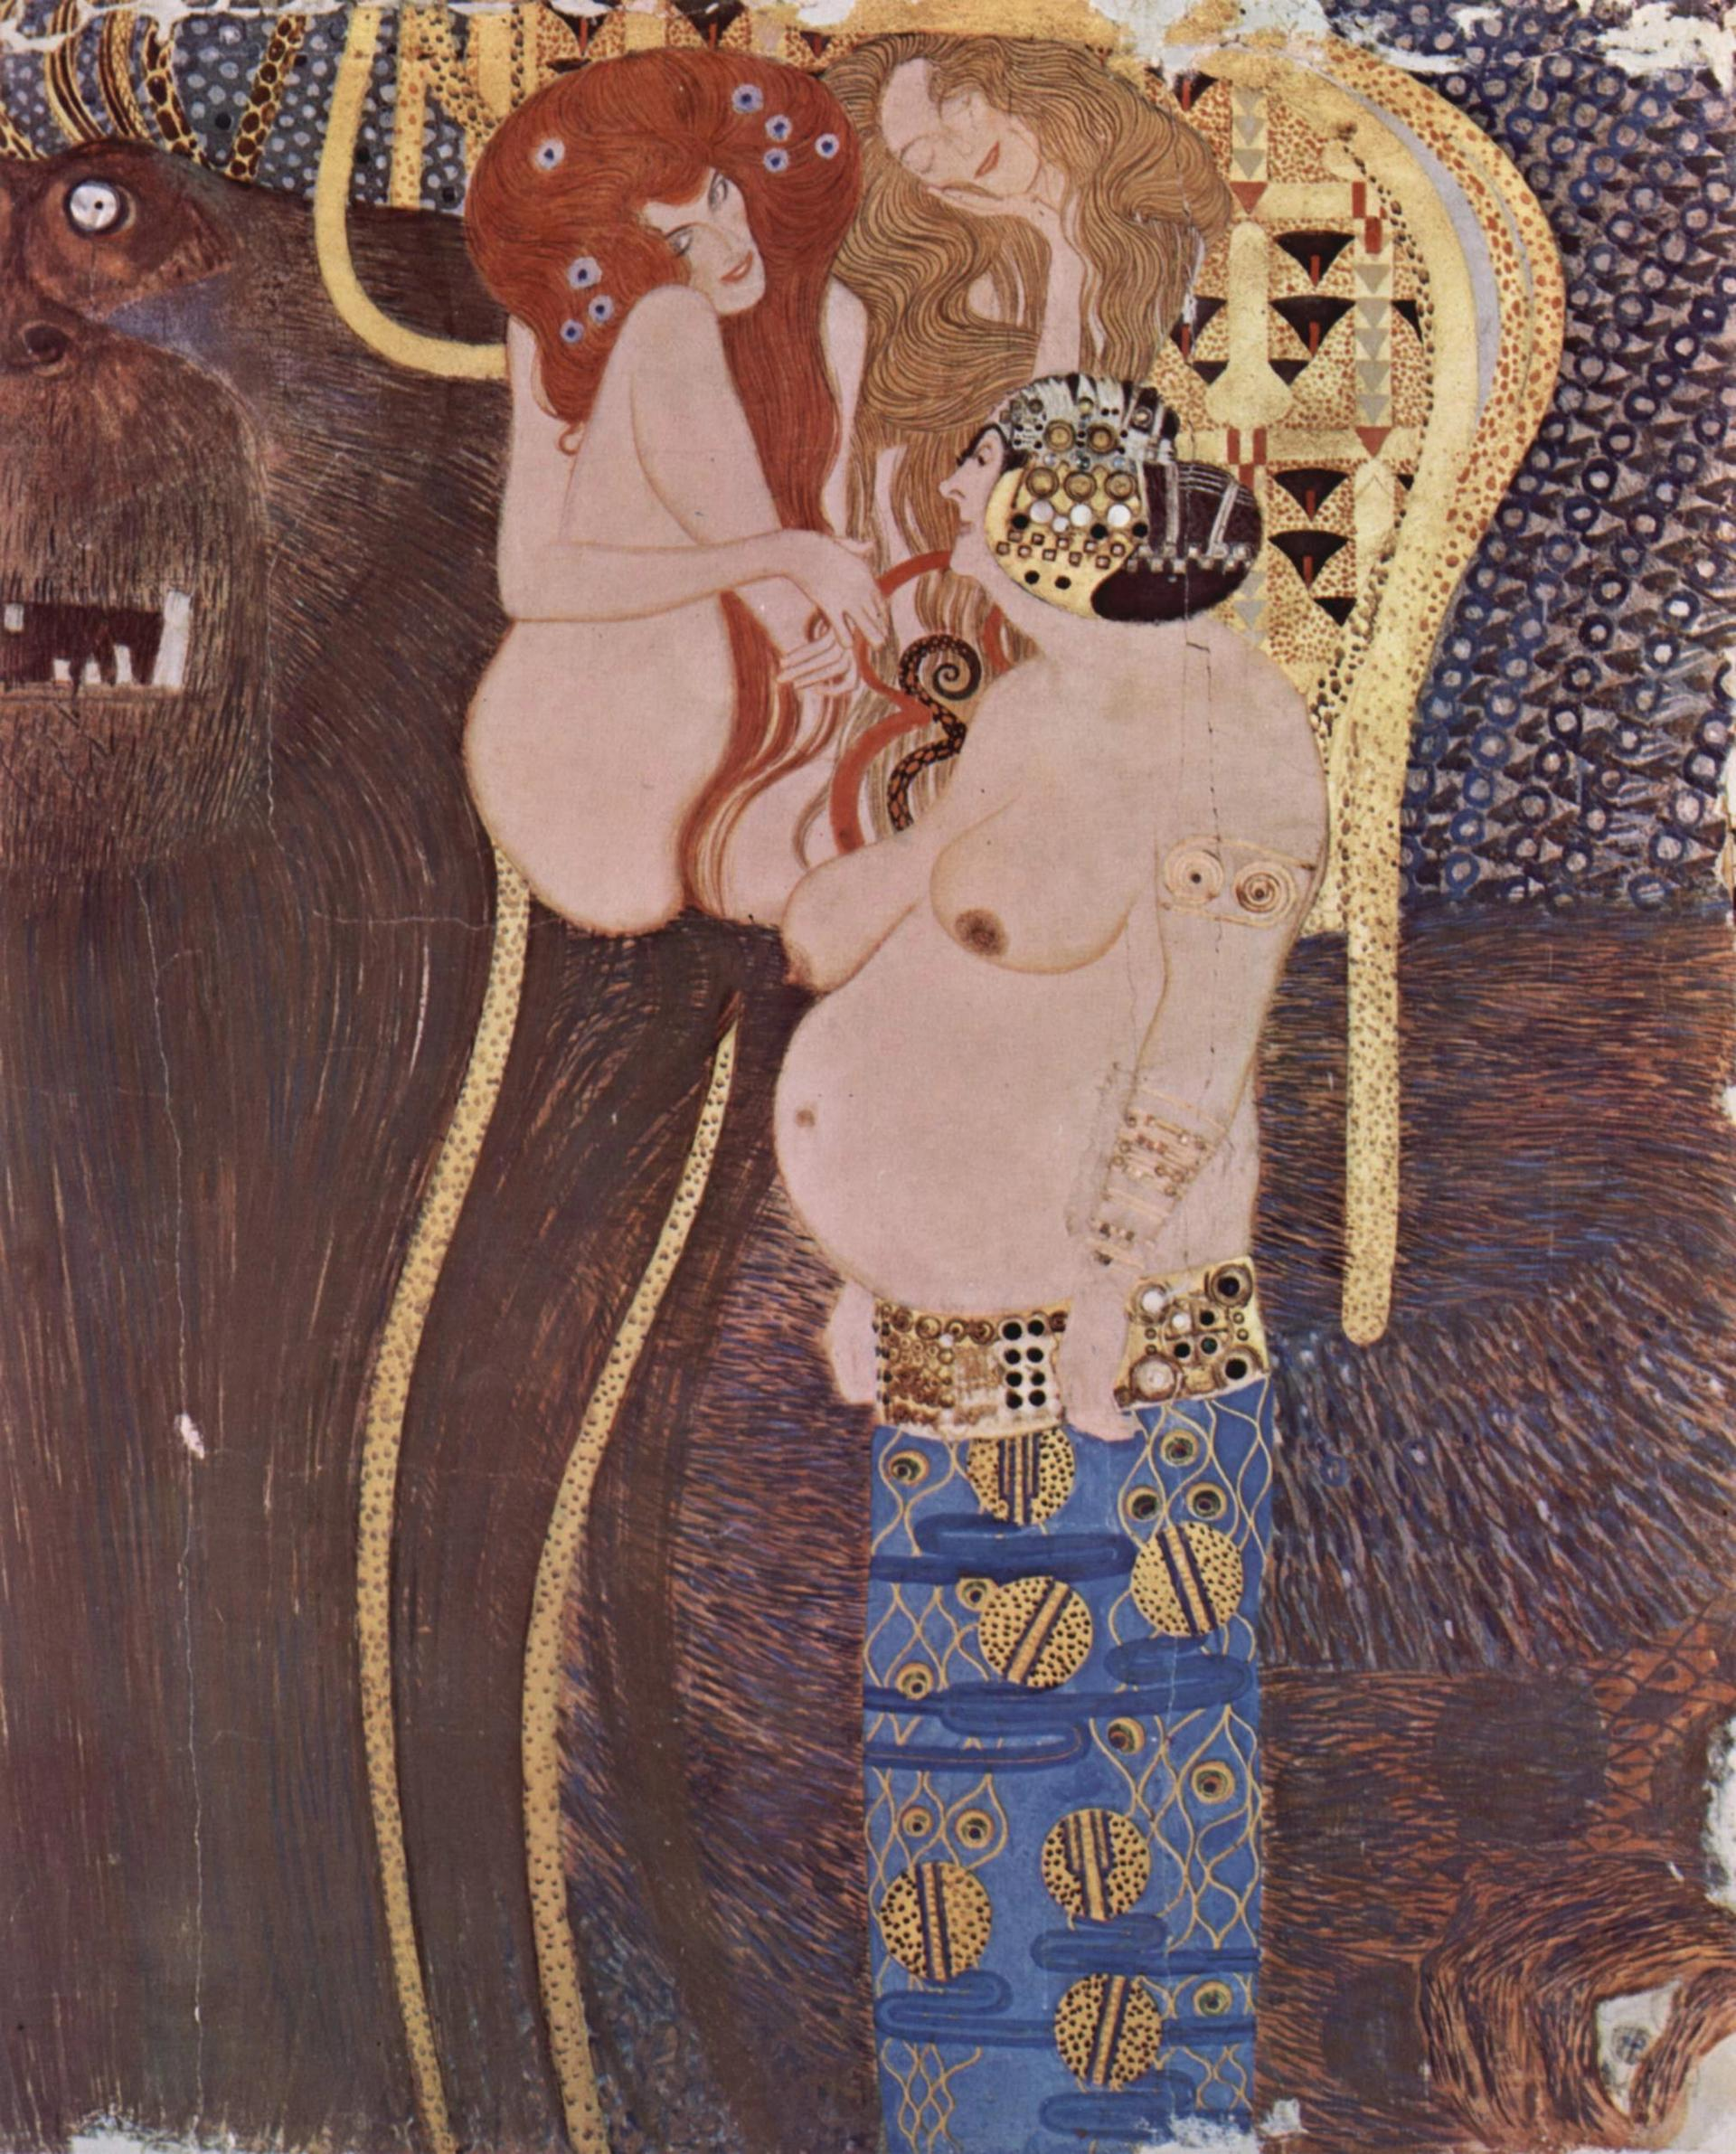 A section from Gustav Klimt's Beethoven Frieze (1902) The Yorck Project (2002) 10.000 Meisterwerke der Malerei, distributed by Directmedia via Wikicommons